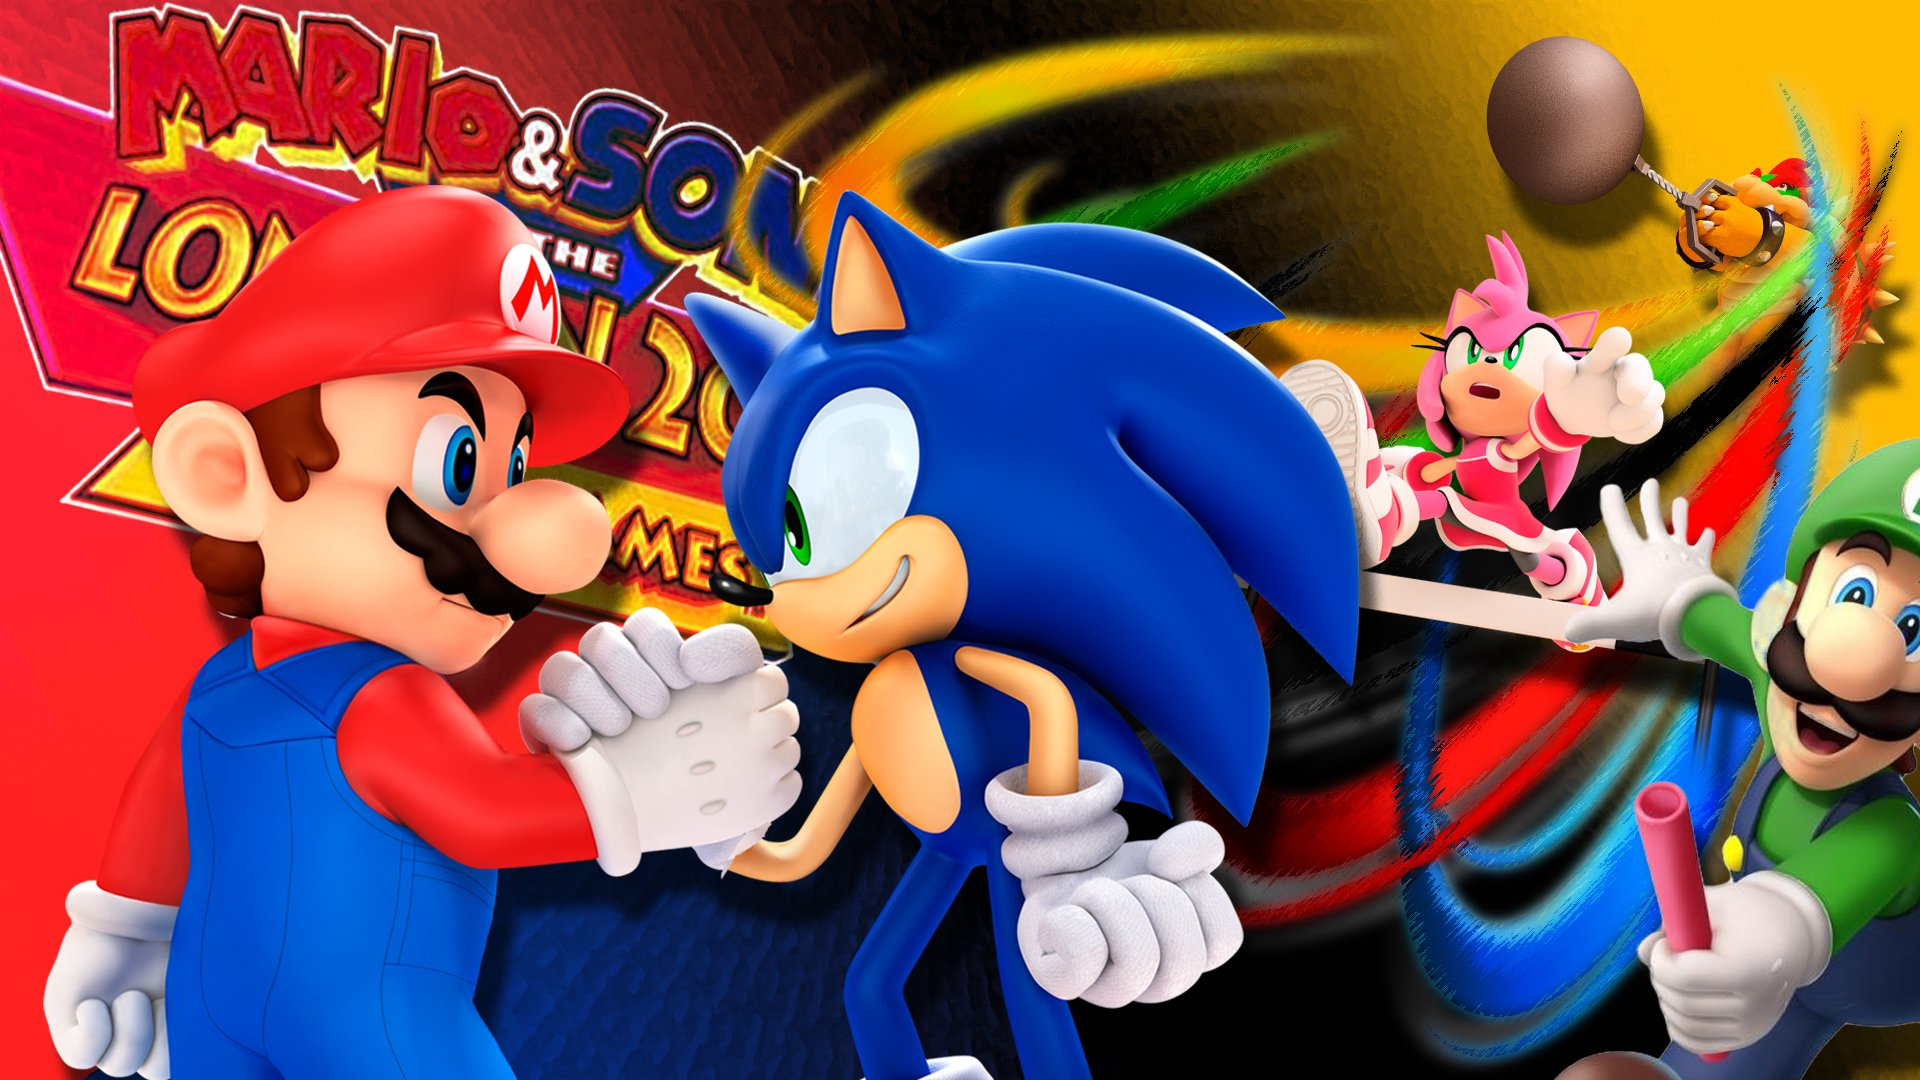 Mario Sonic At The London 2012 Olympic Games Hd Wallpaper